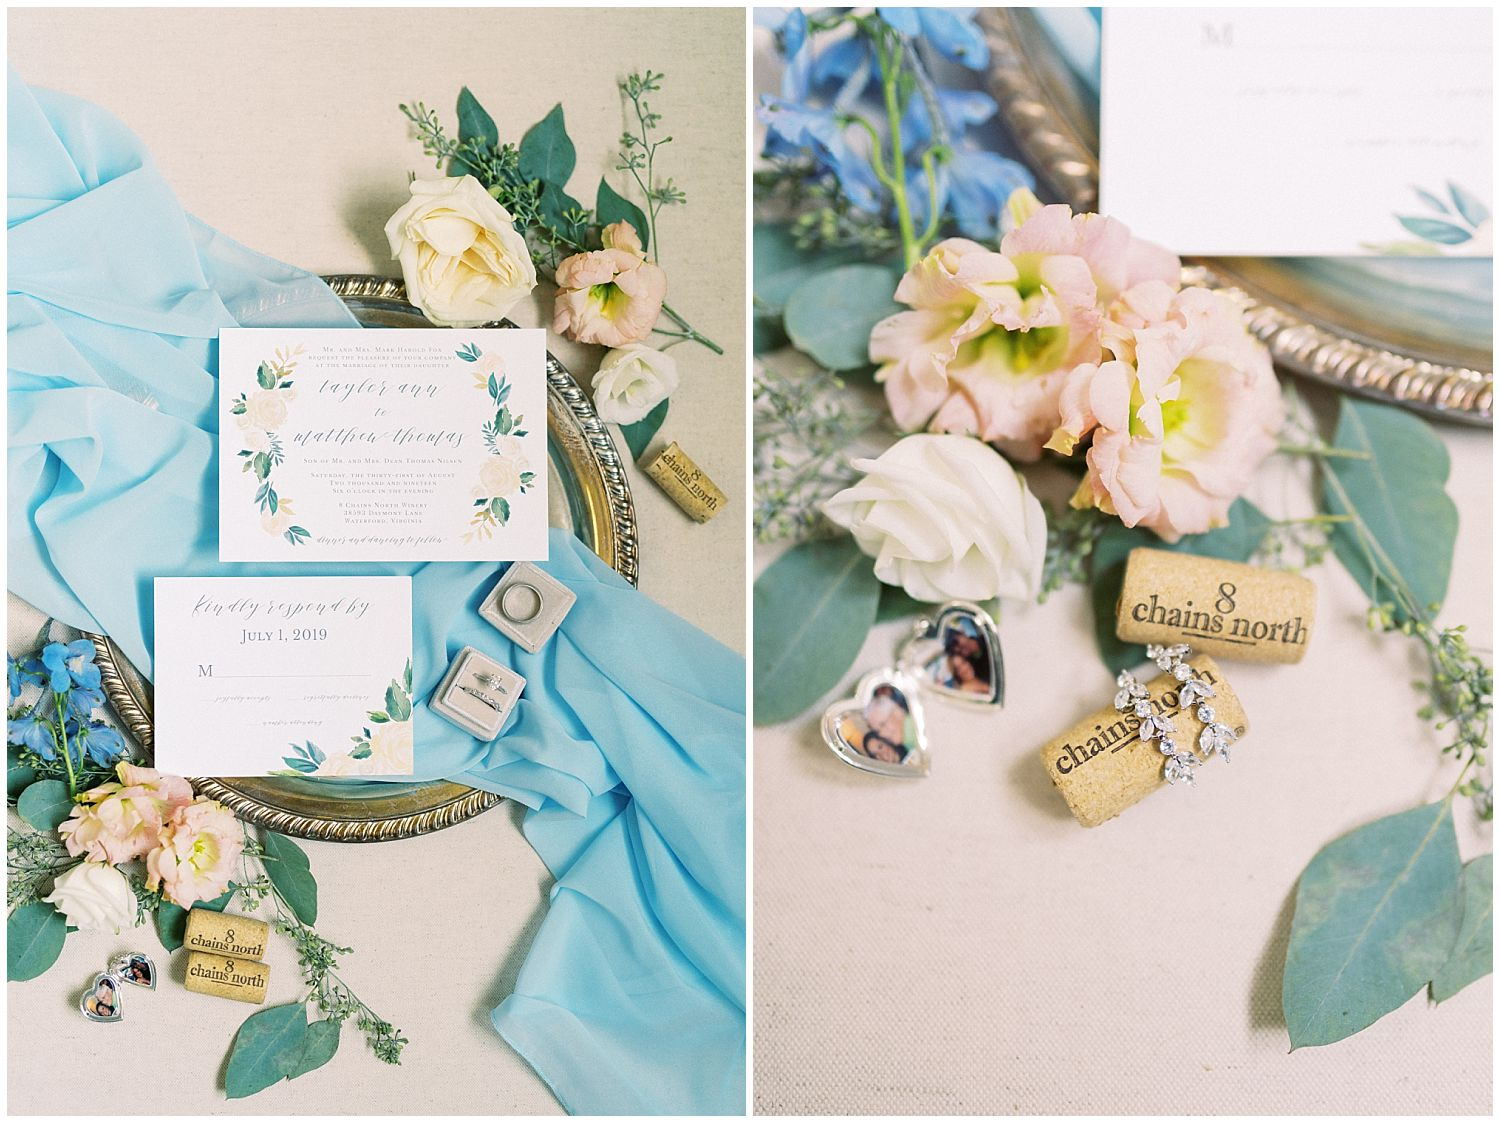 Dusty blue and pink wedding stationery details